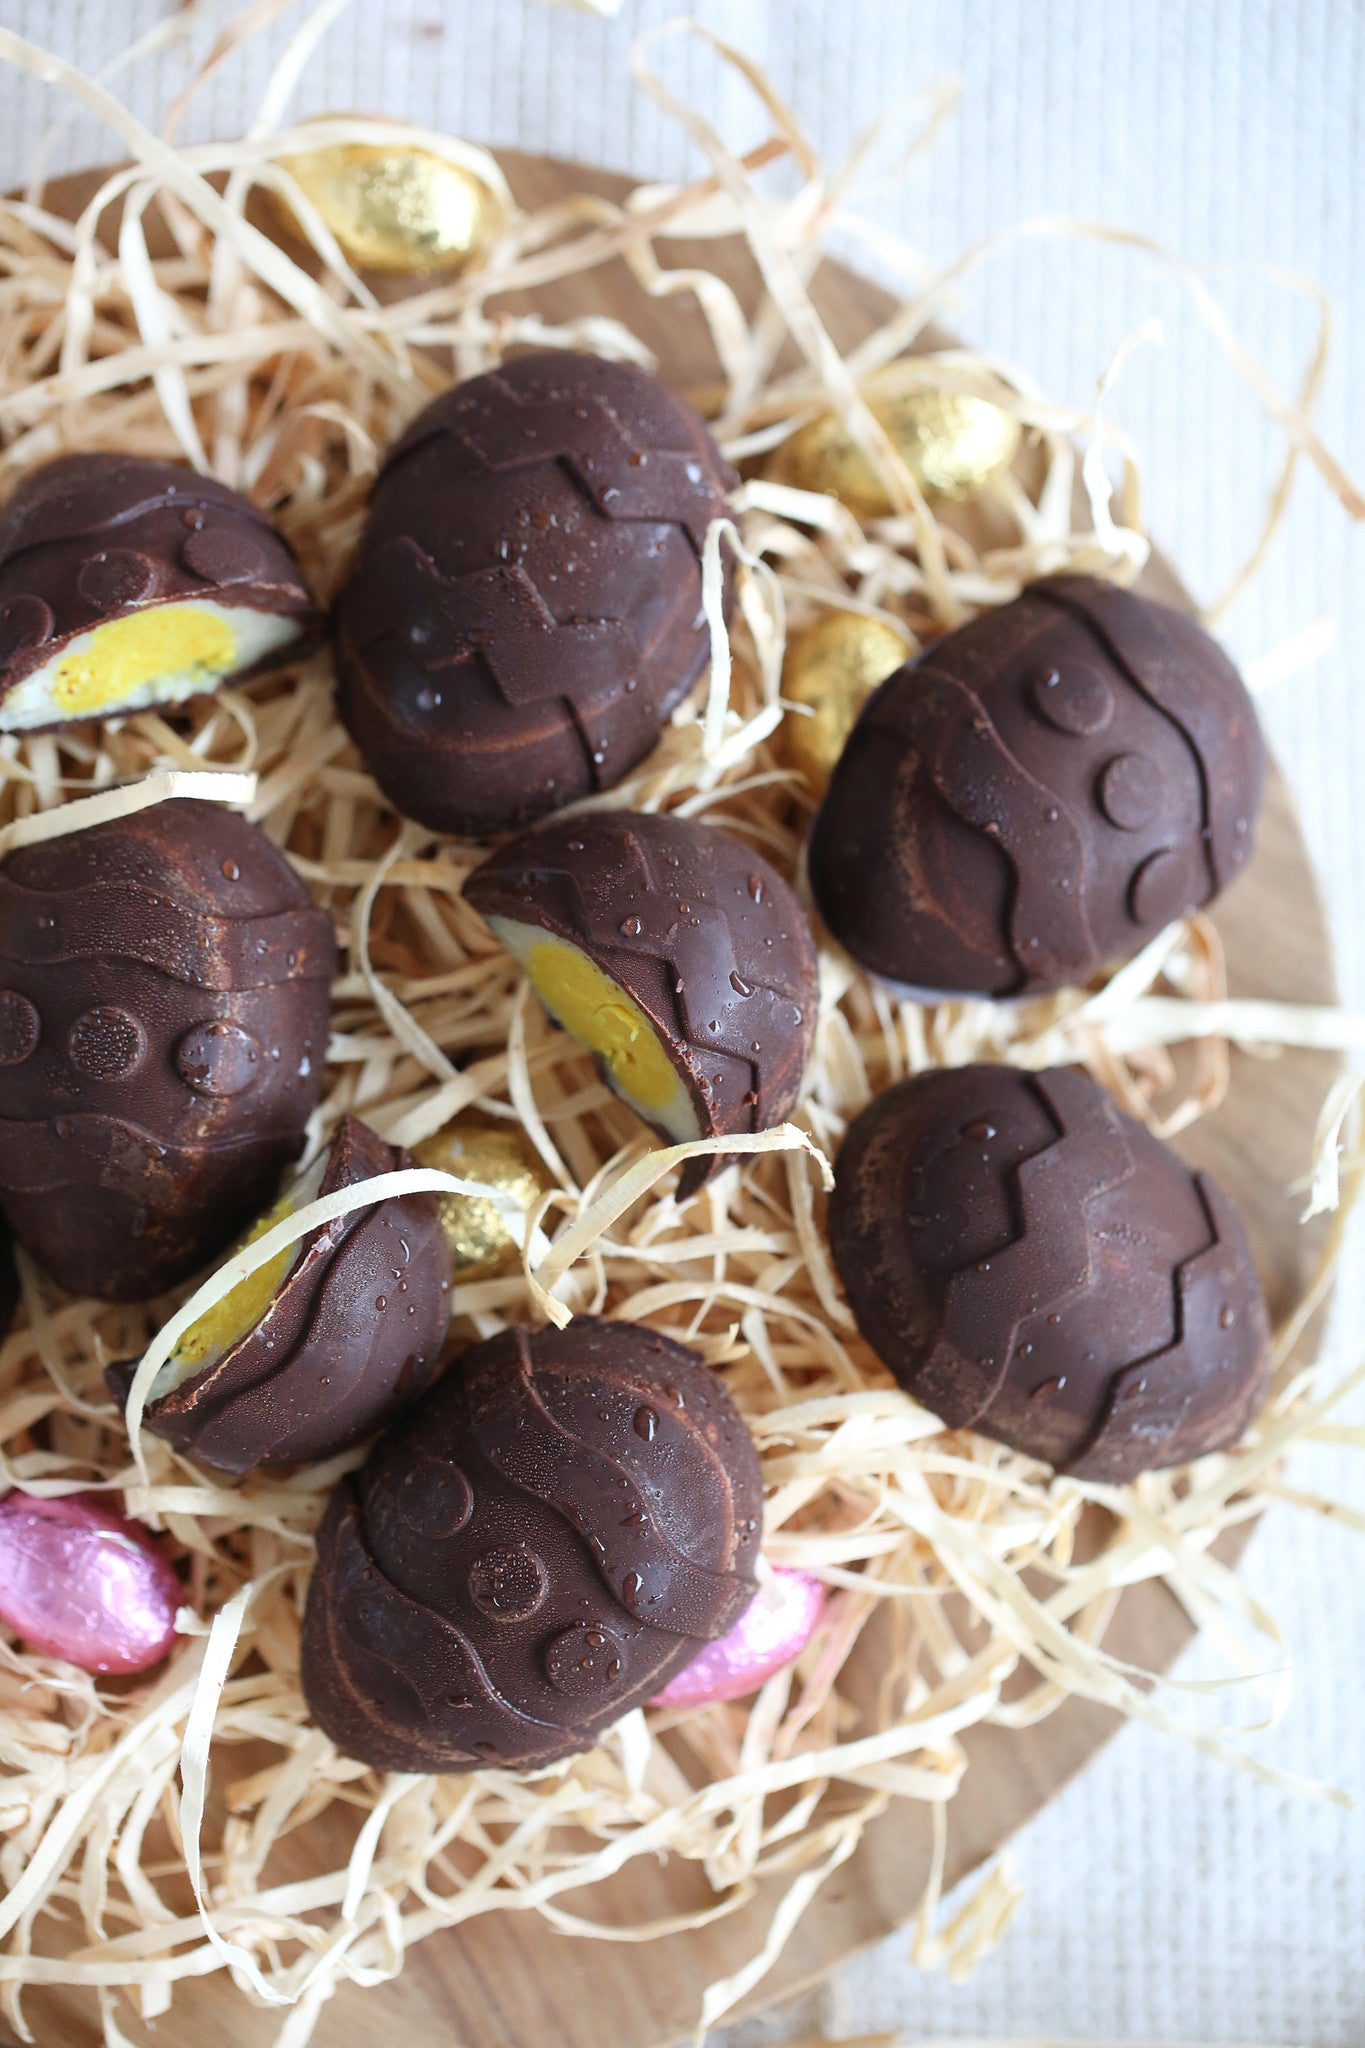 A healthy vegan version of your favourite Easter egg – with no dairy, refined sugar, or unrecognisable numbers. Super fun to make and eat!